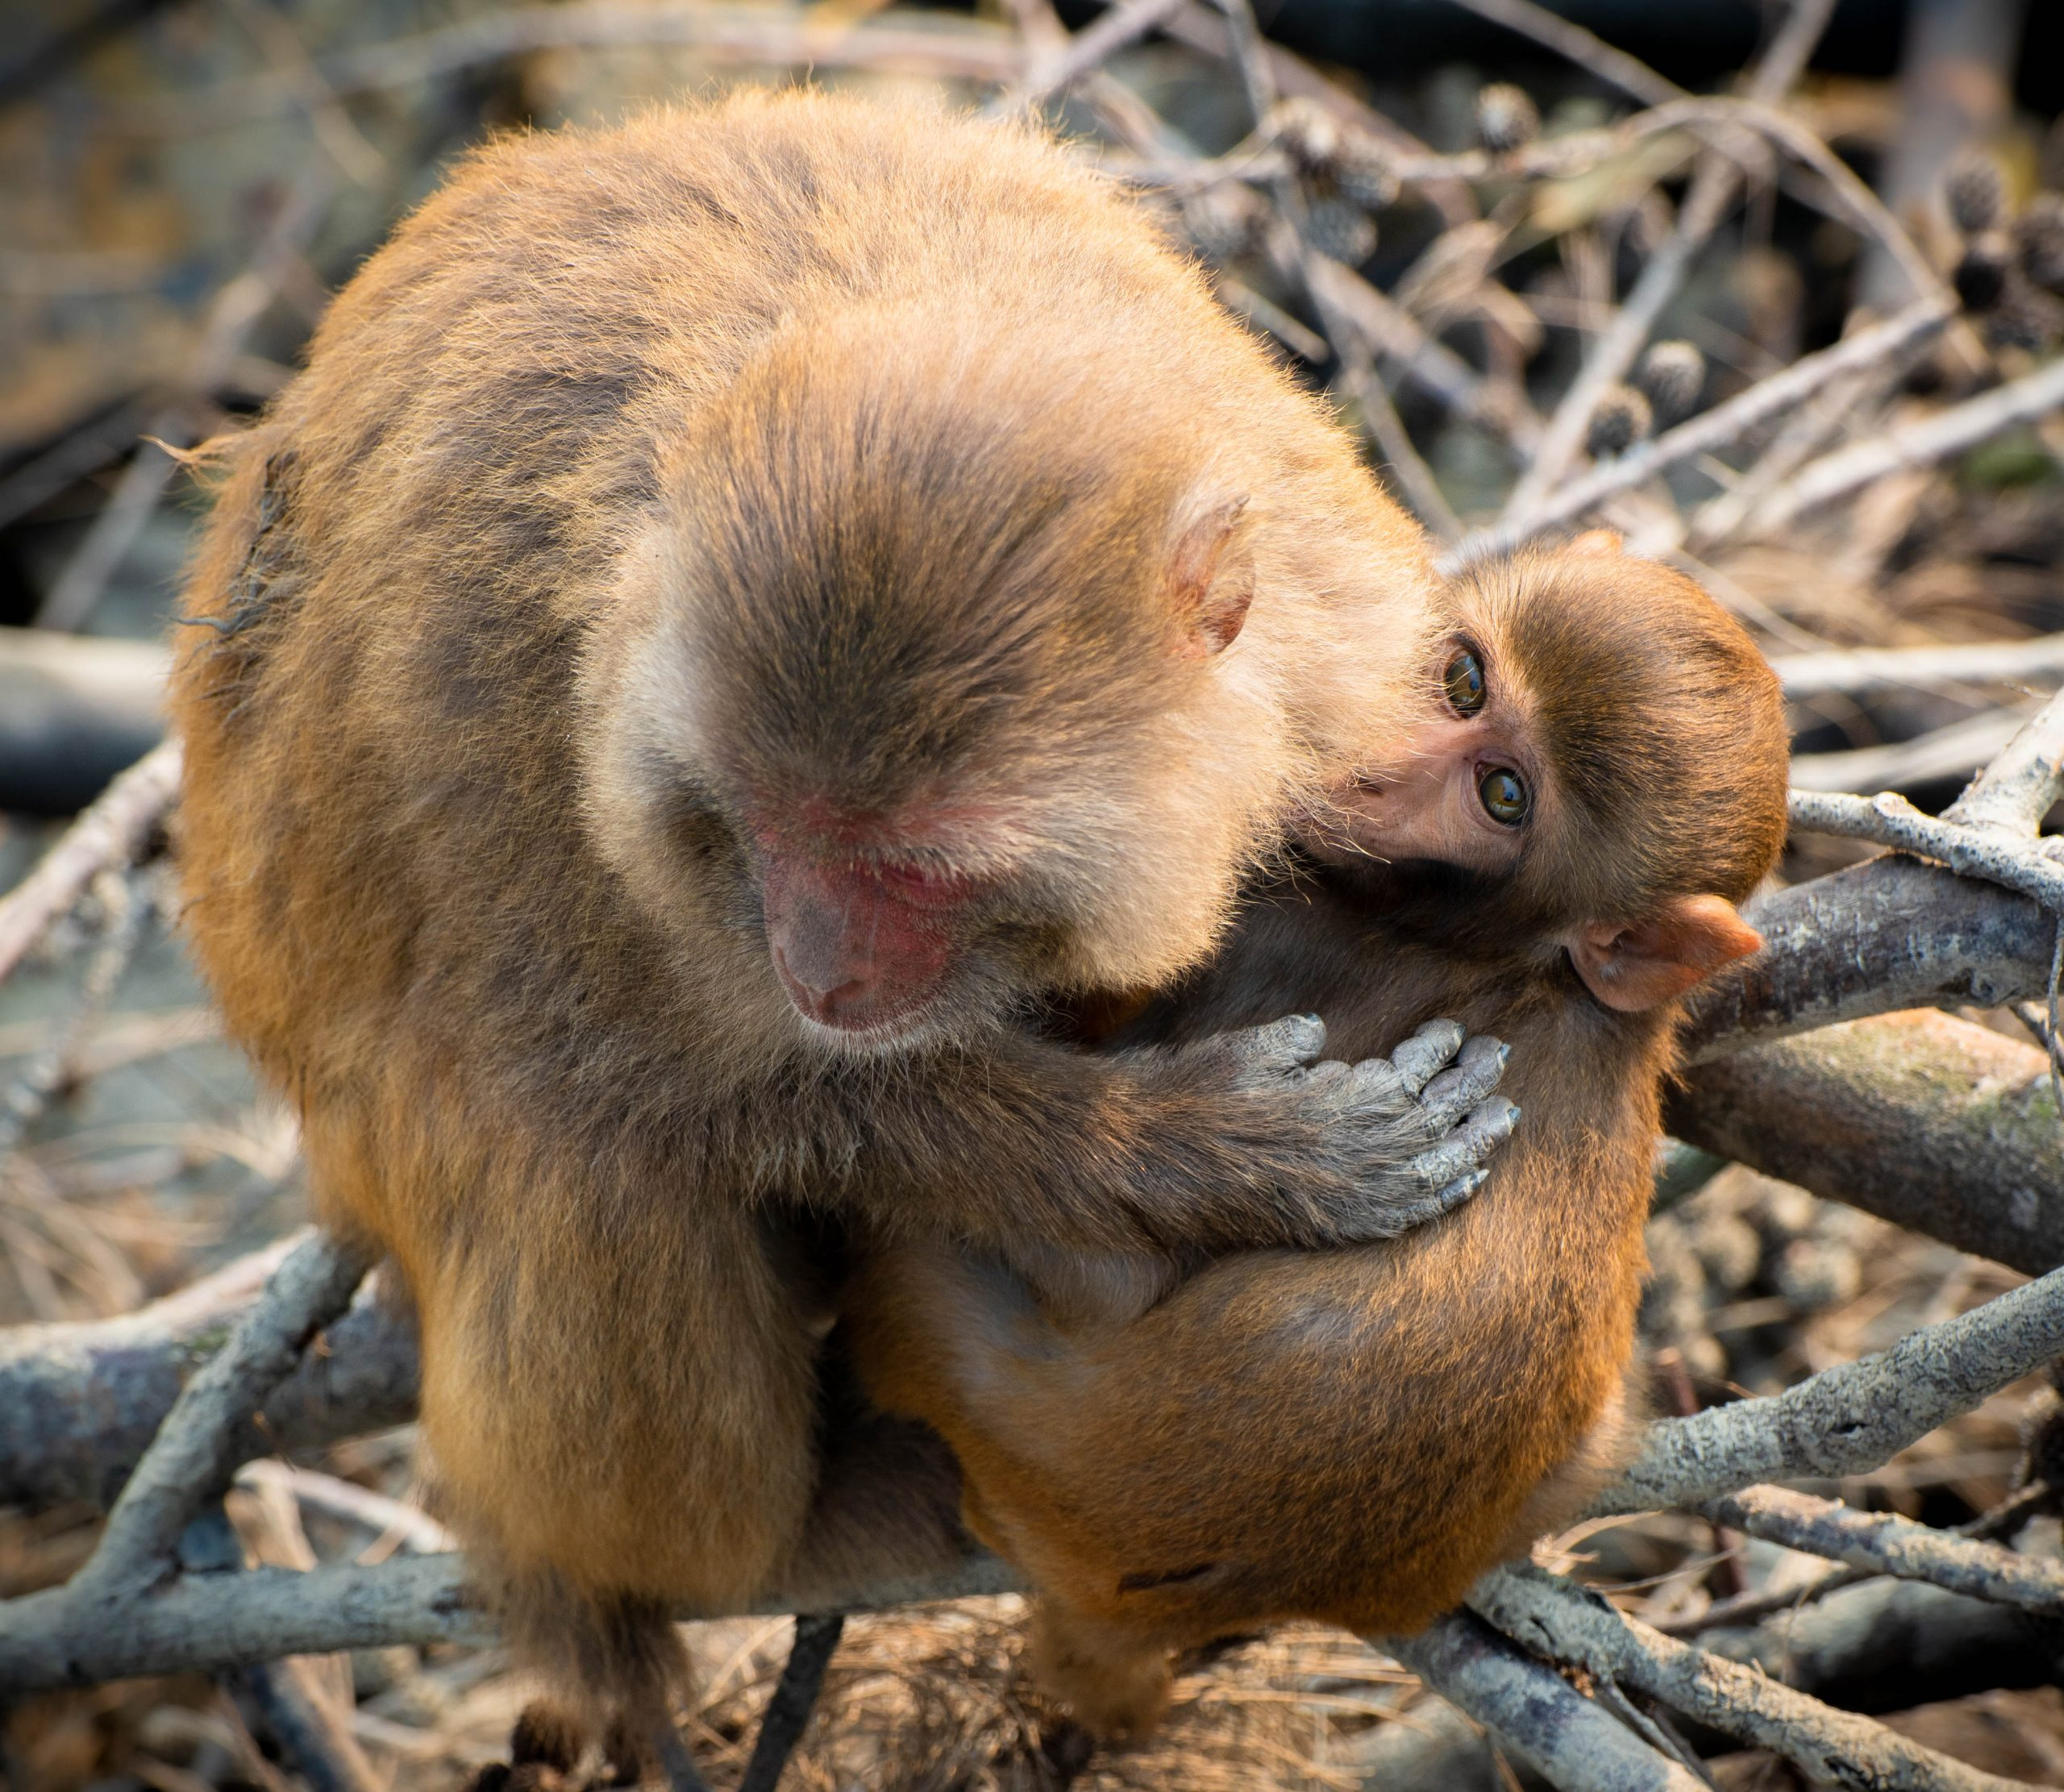 A mother monkey with baby monkey